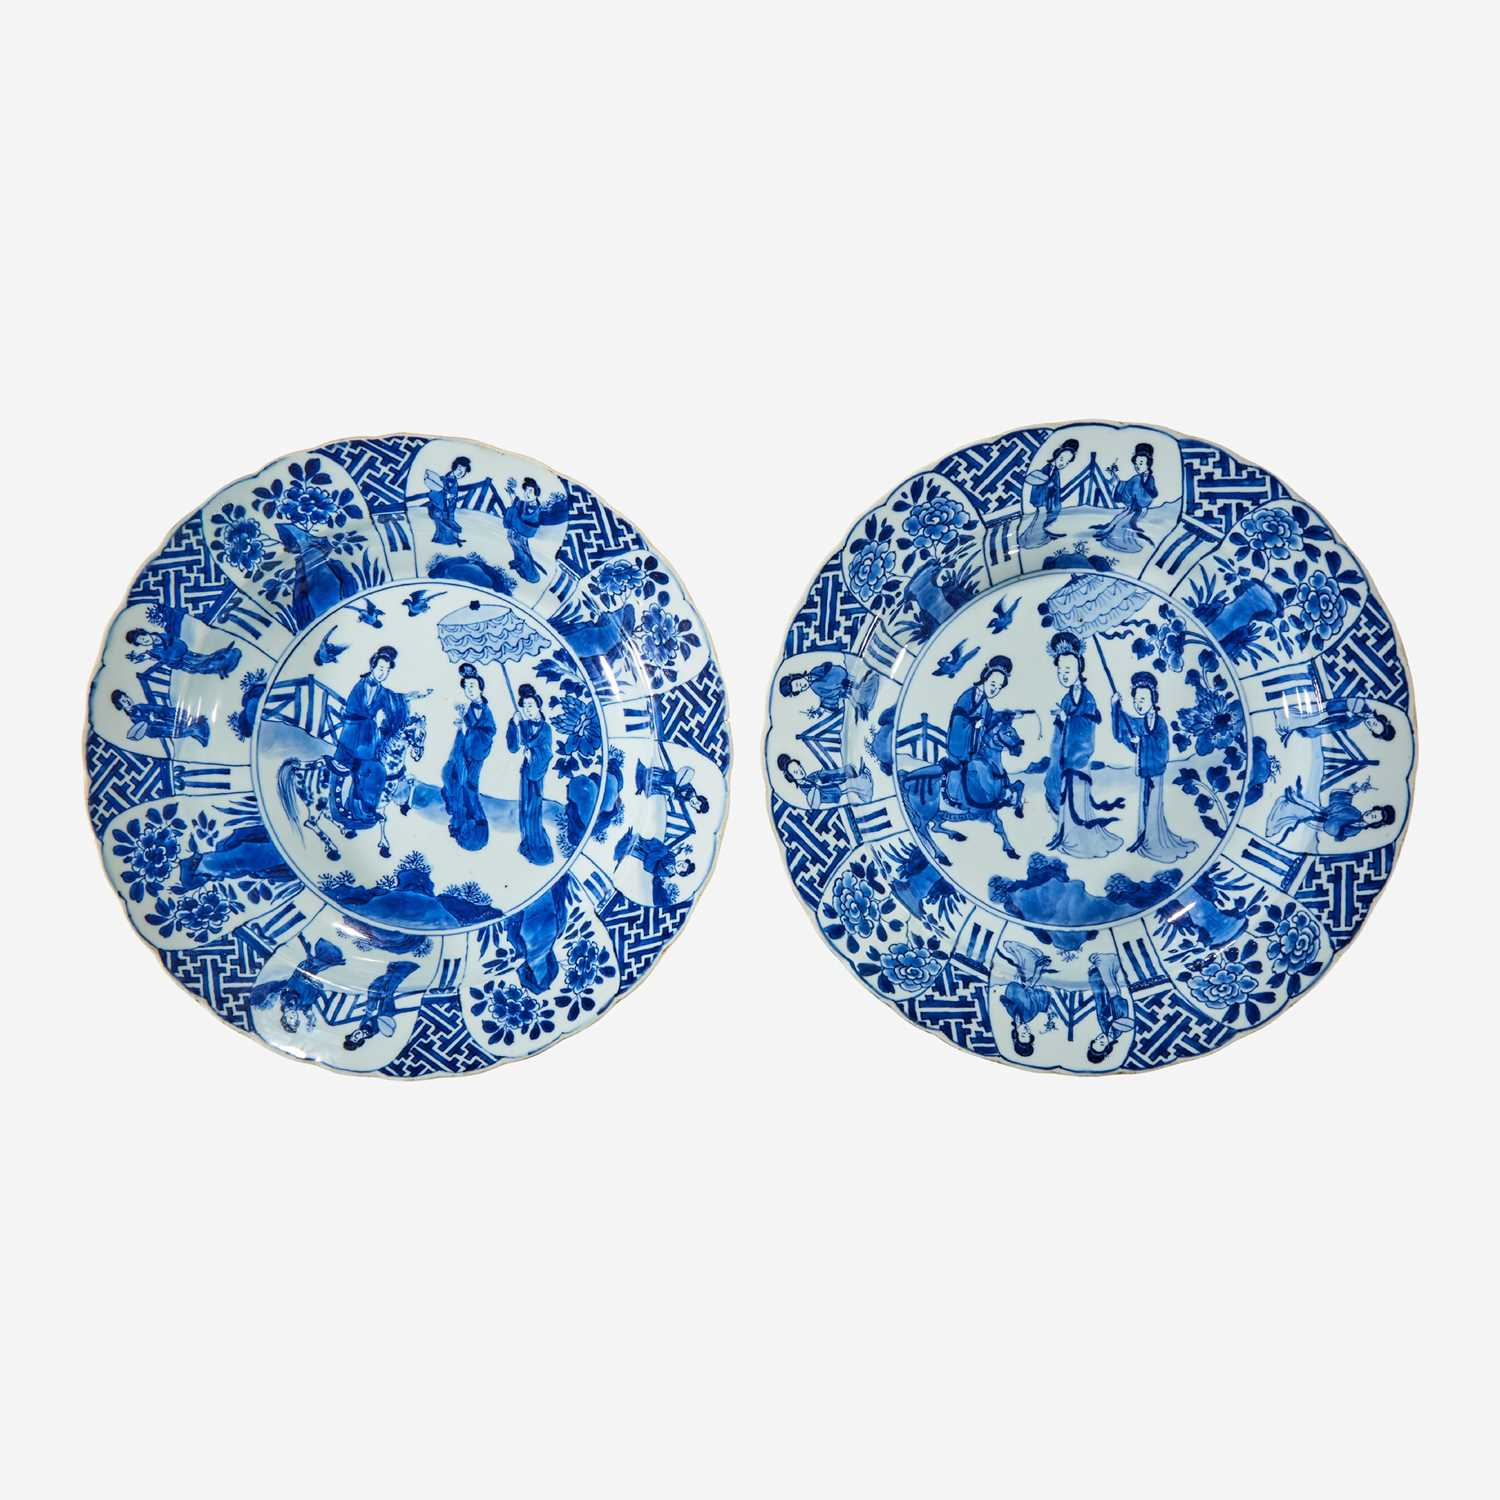 Lot 47 - A pair of Chinese blue and white porcelain basins